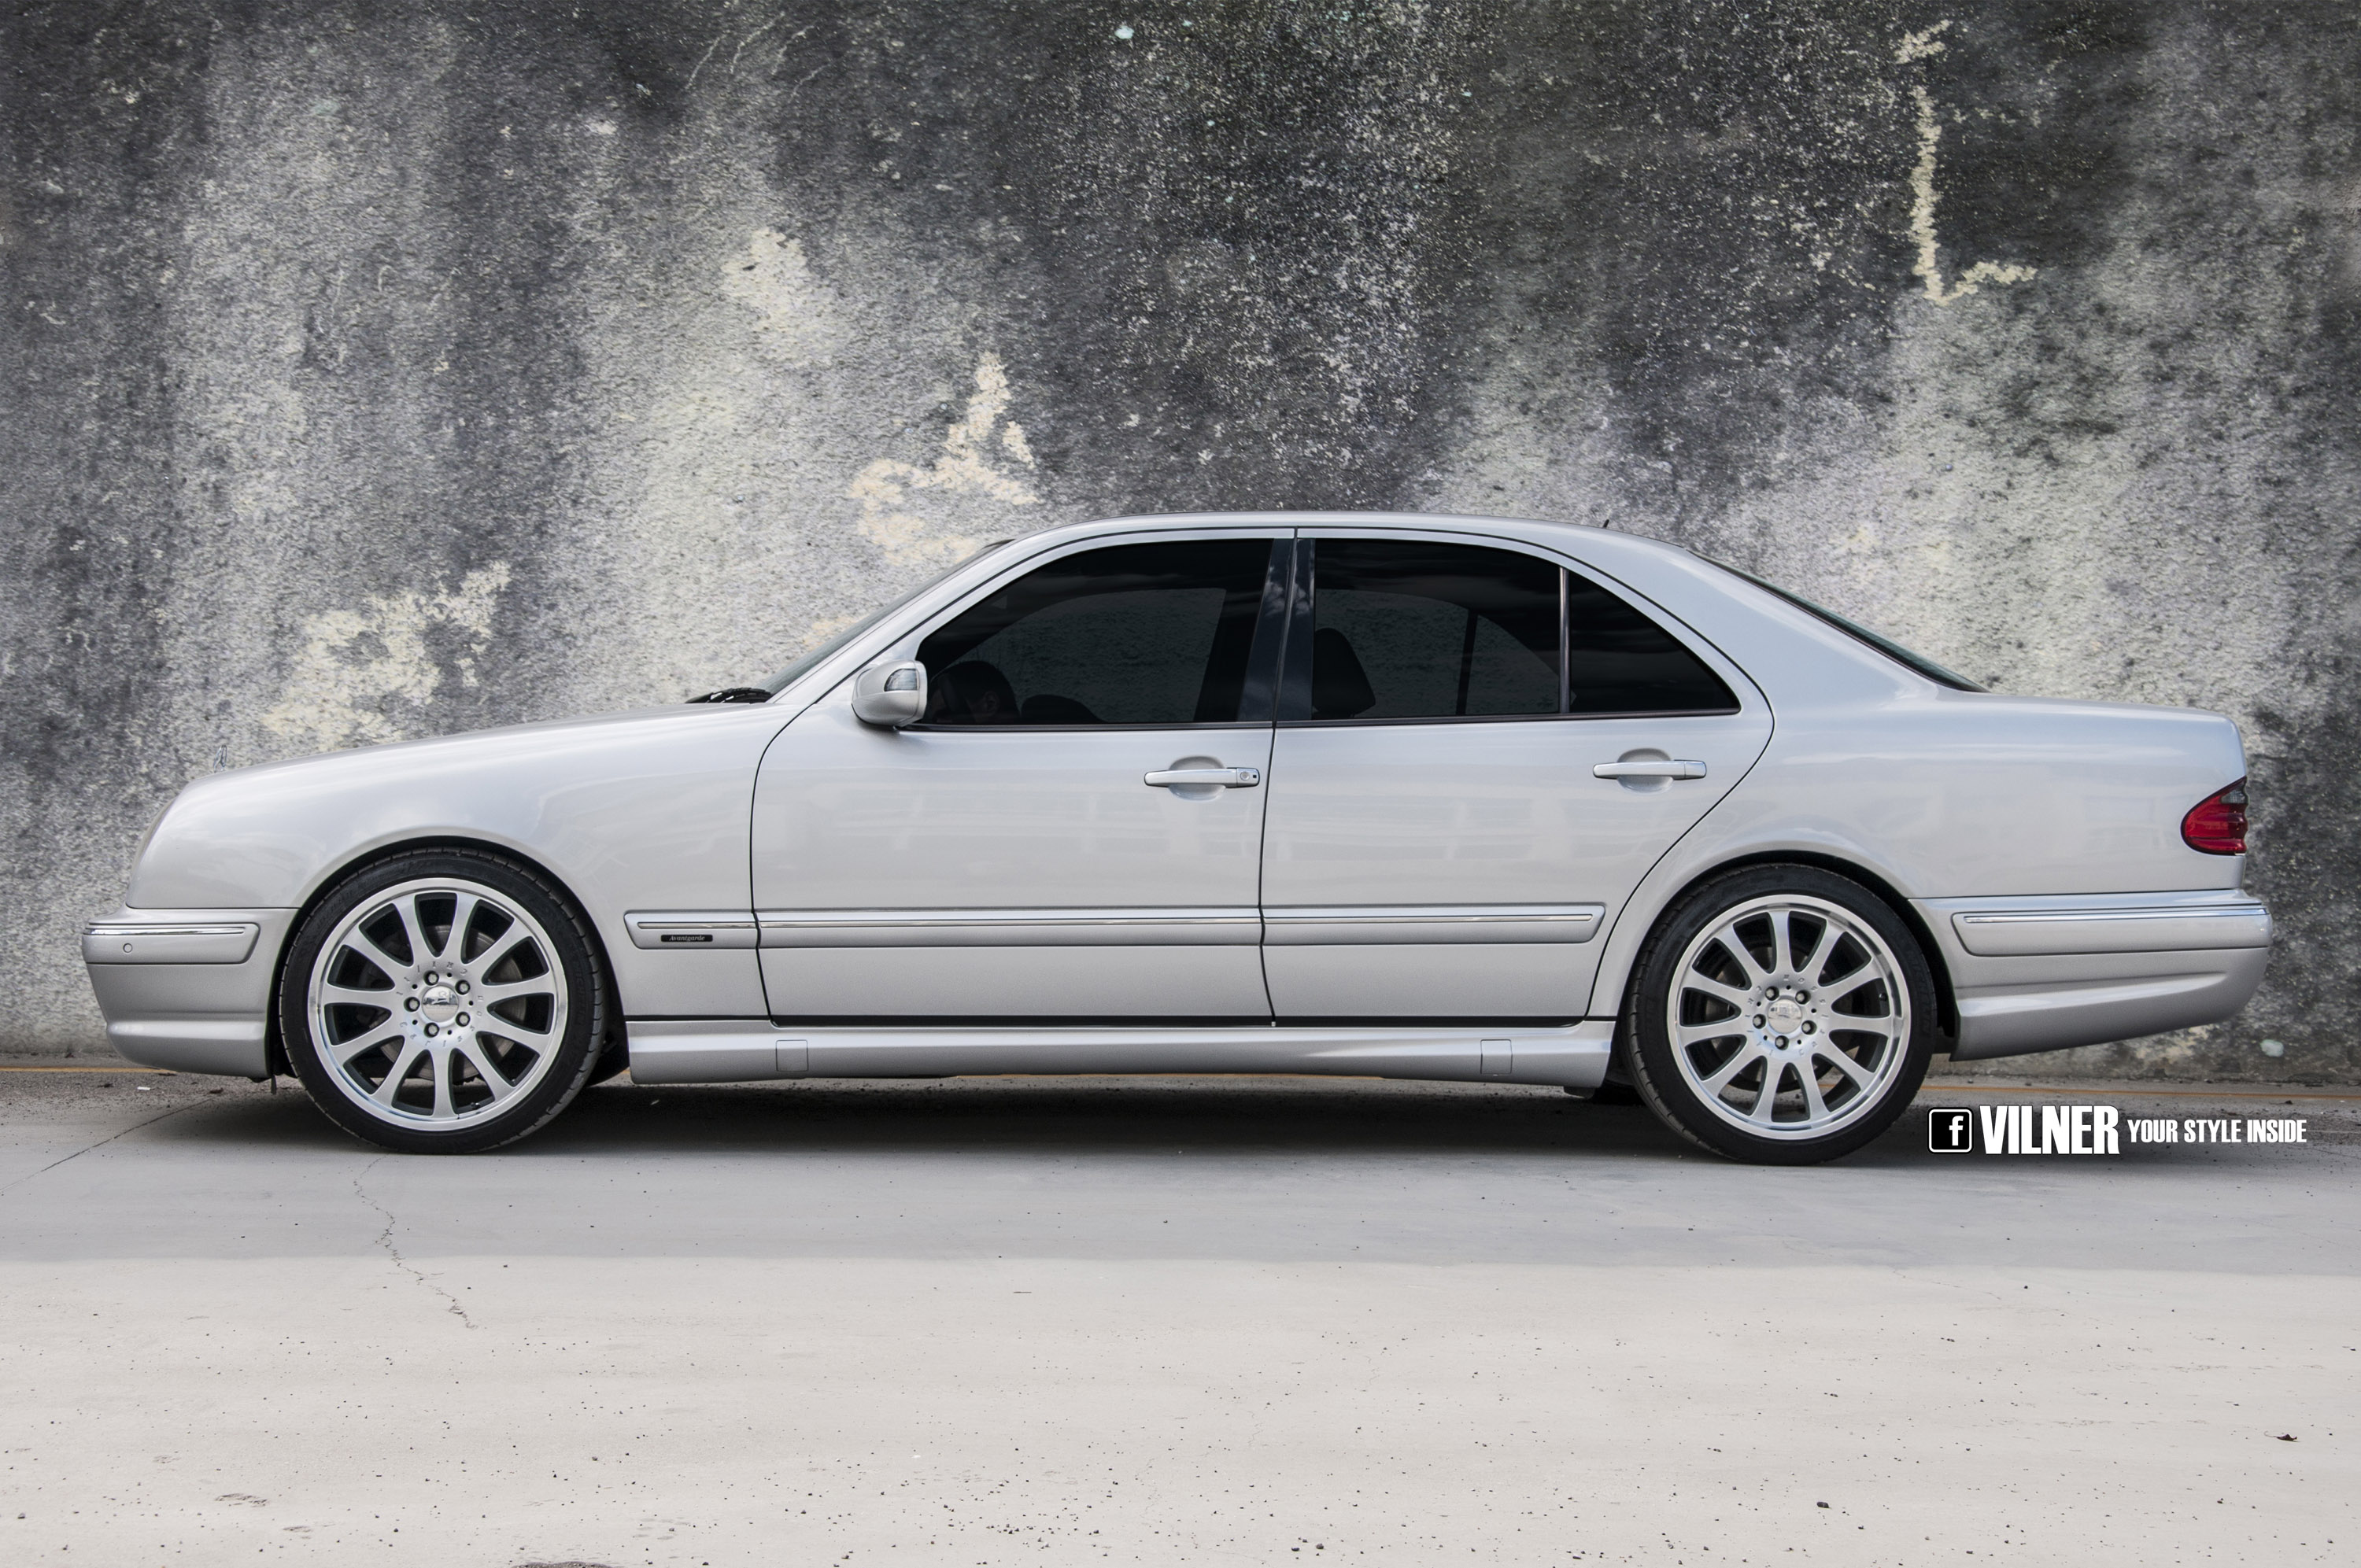 mercedes sale on for amg a bat listing benz bring wagon lot sold station auctions trailer december